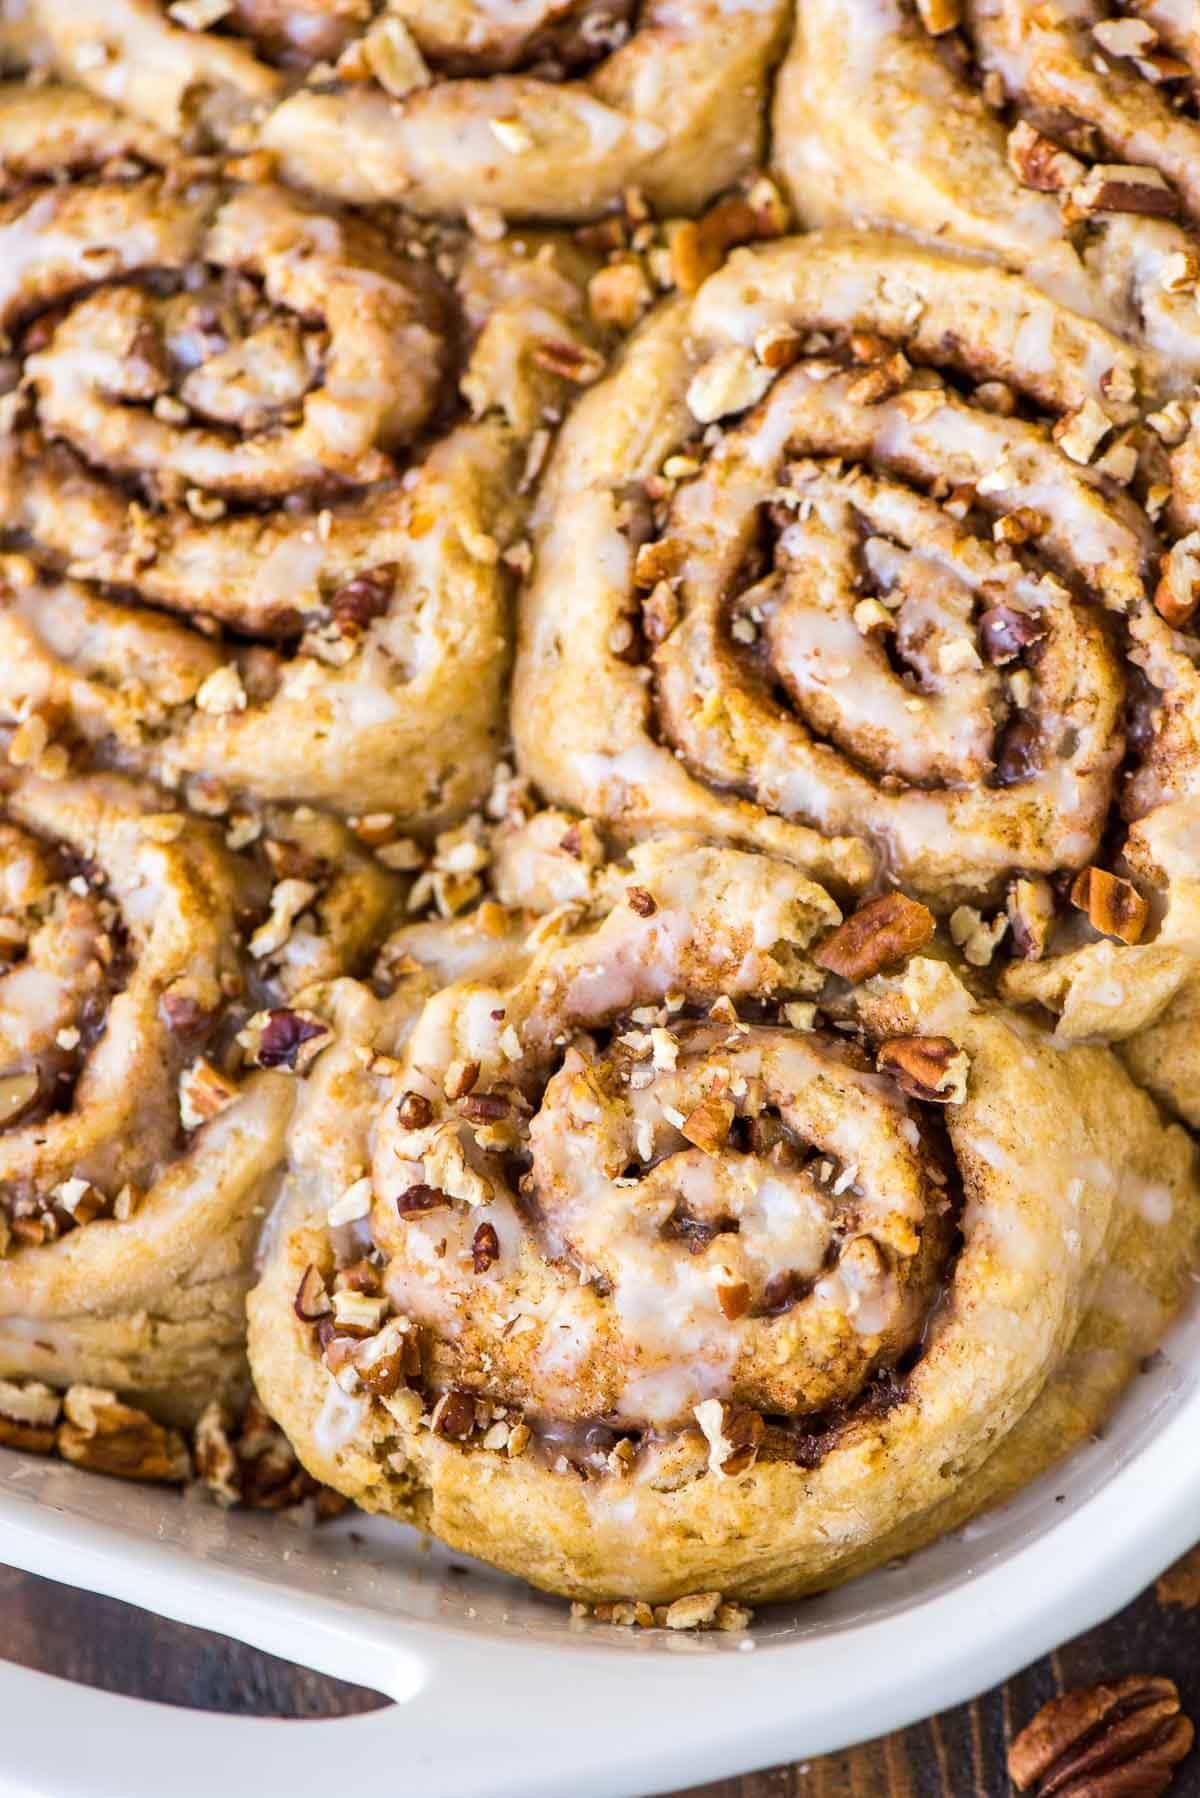 The BEST Homemade Biscuit Cinnamon Rolls. Easy recipe with no rising! Fluffy buttermilk biscuit dough, filled with gooey cinnamon sugar and topped with buttermilk glaze and toasted pecans. TO DIE FOR. Recipe at wellplated.com | @wellplated